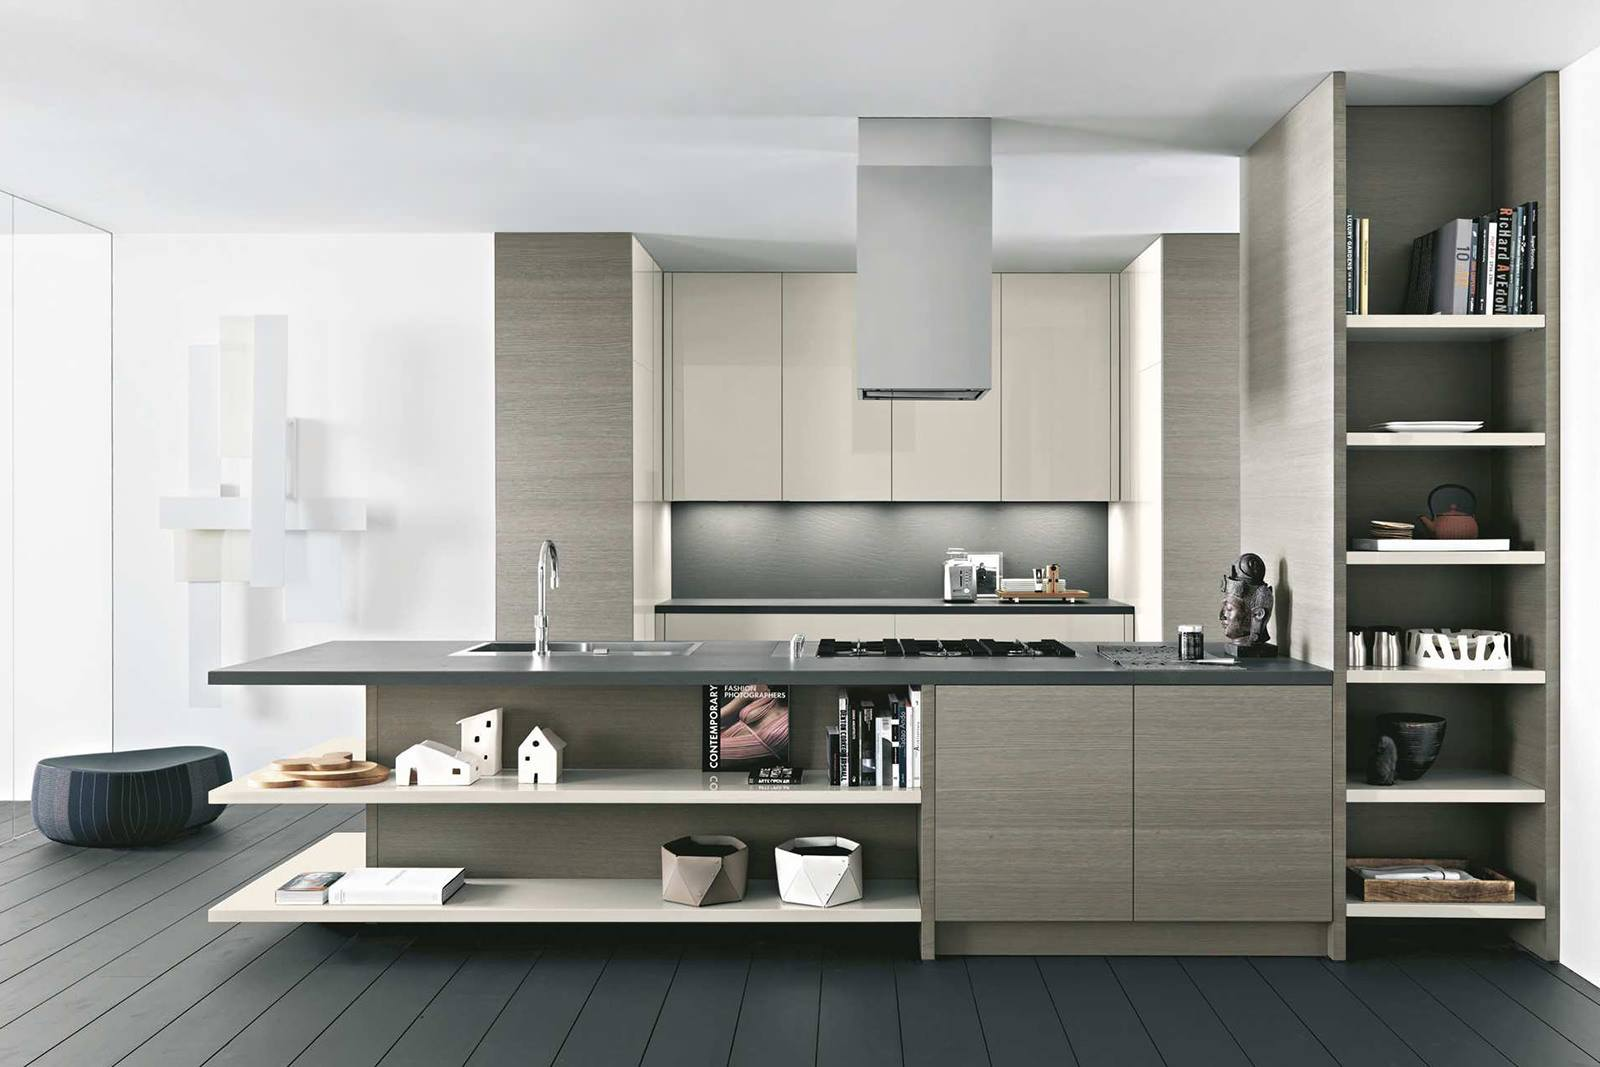 Gray and white designed modern kitchen with dark floor and open shelves